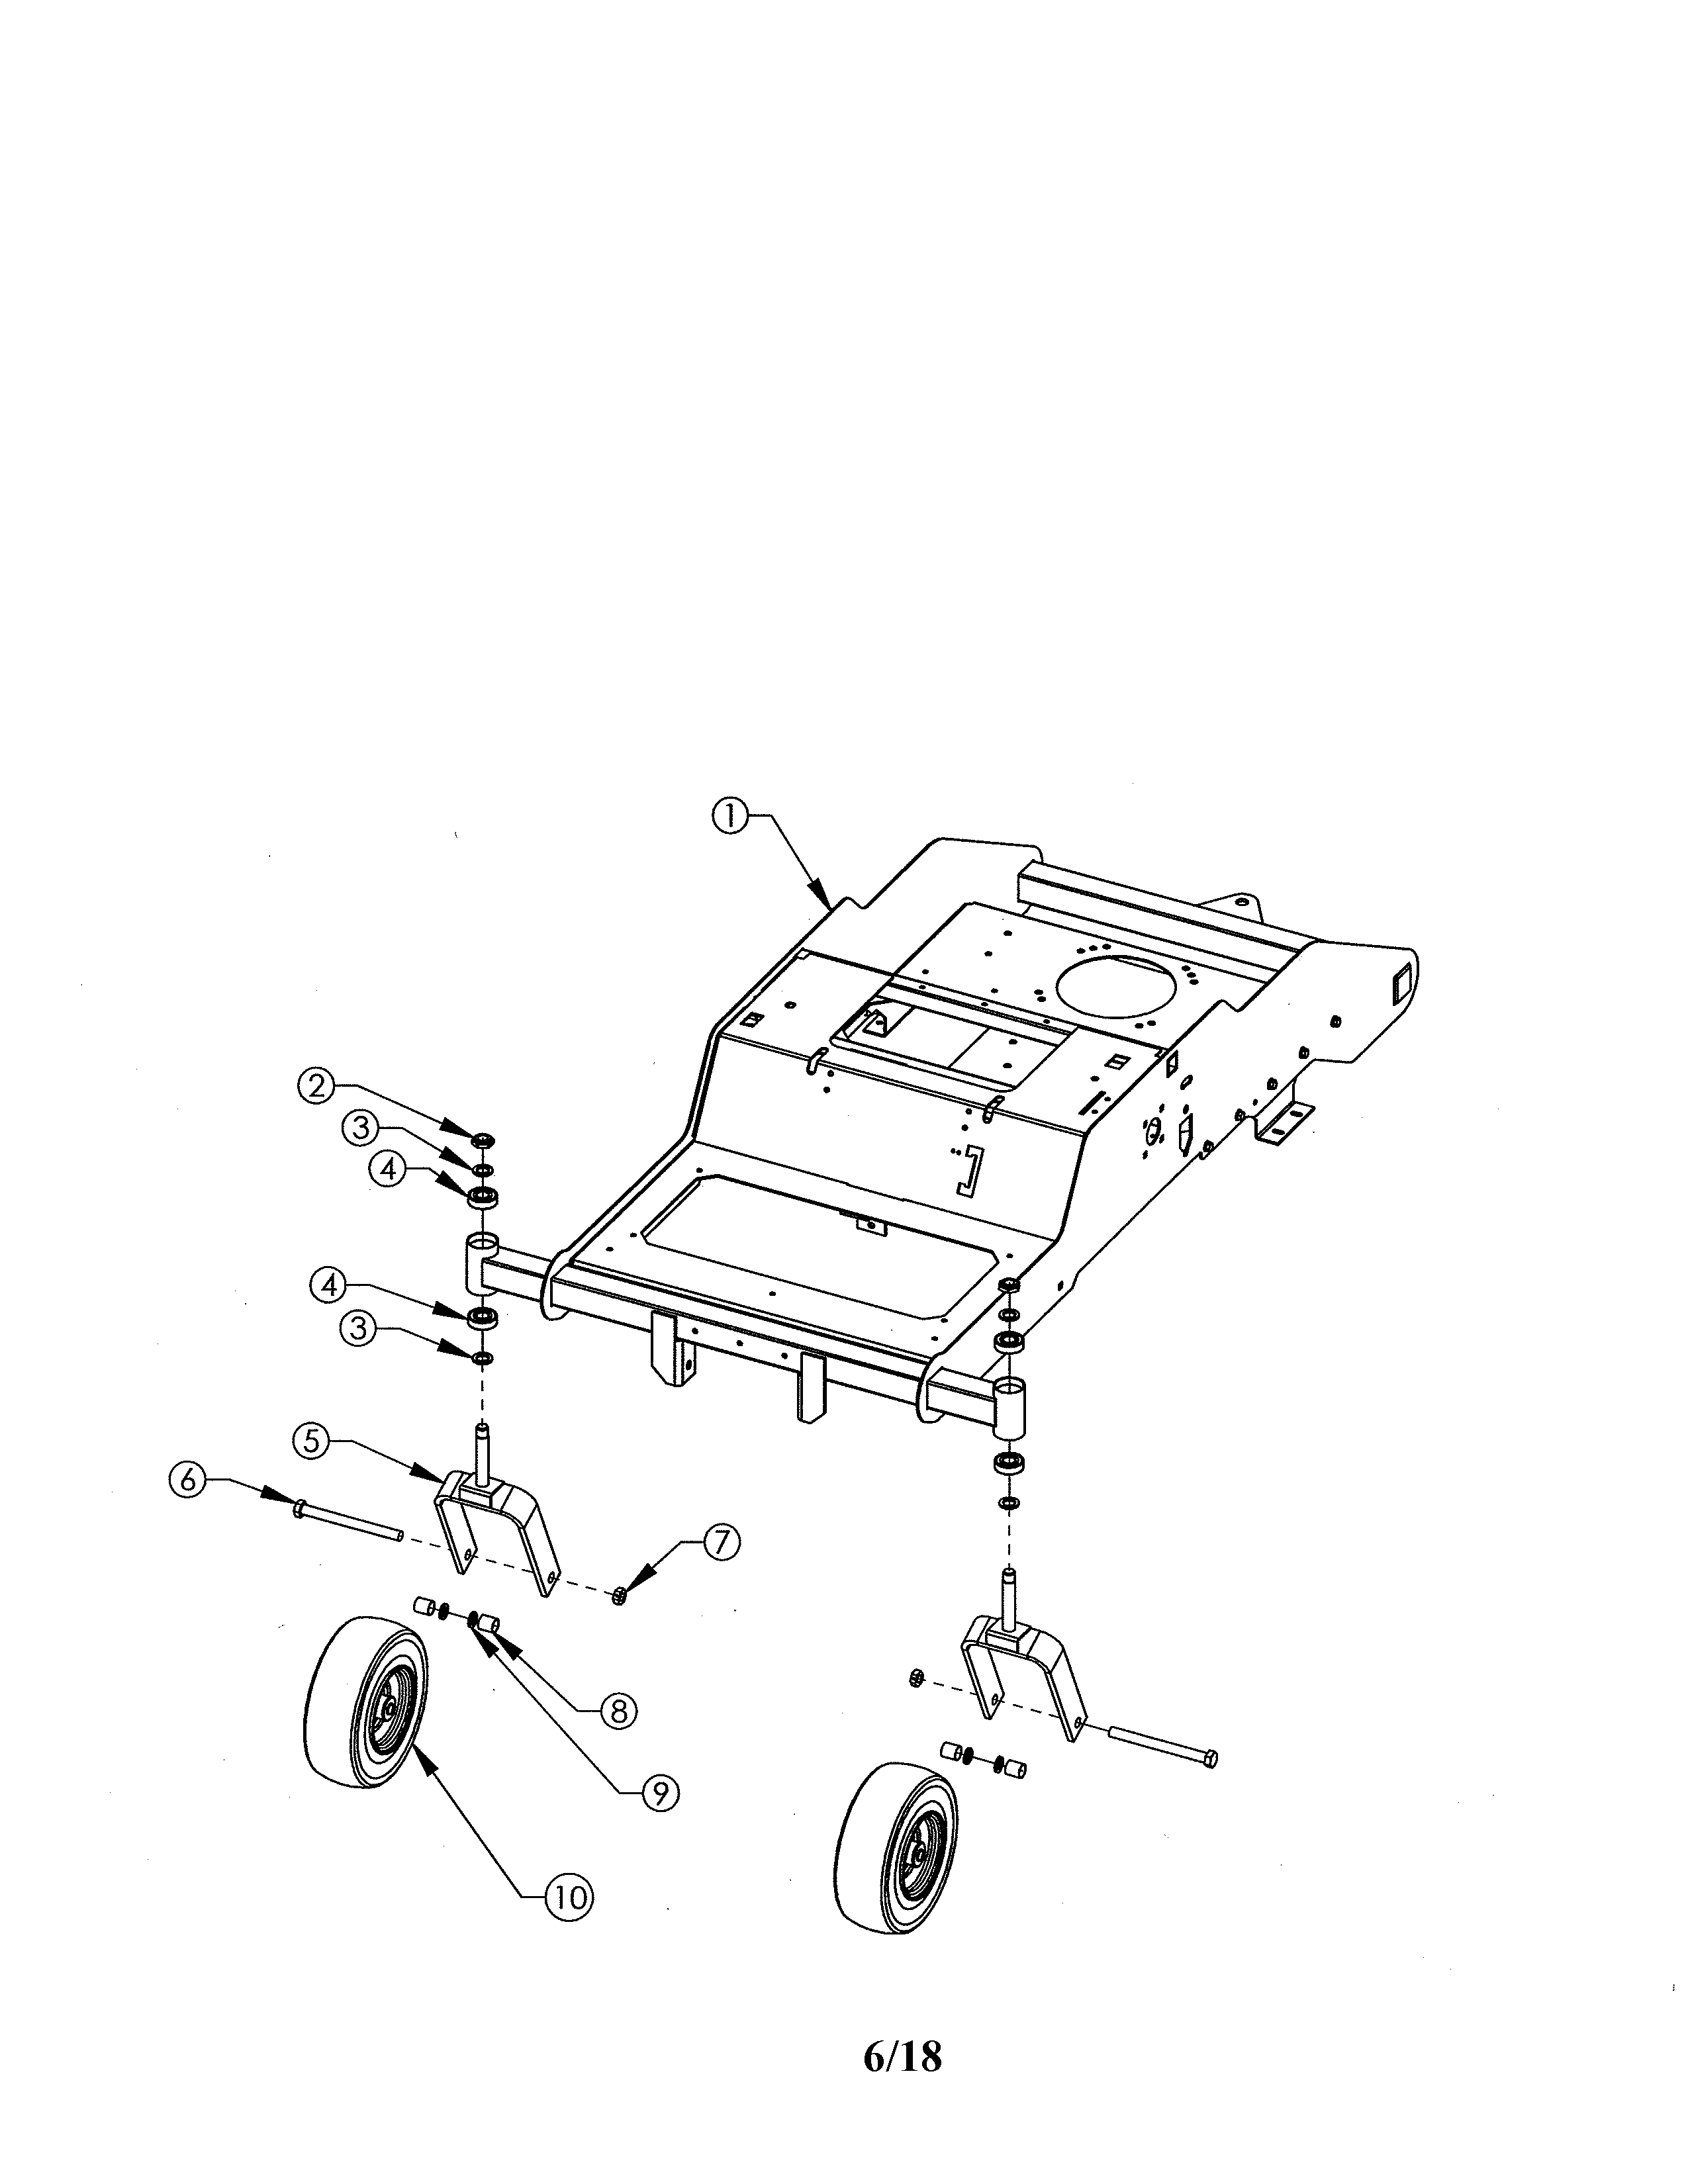 Swisher ZT2452A caster/front wheel diagram